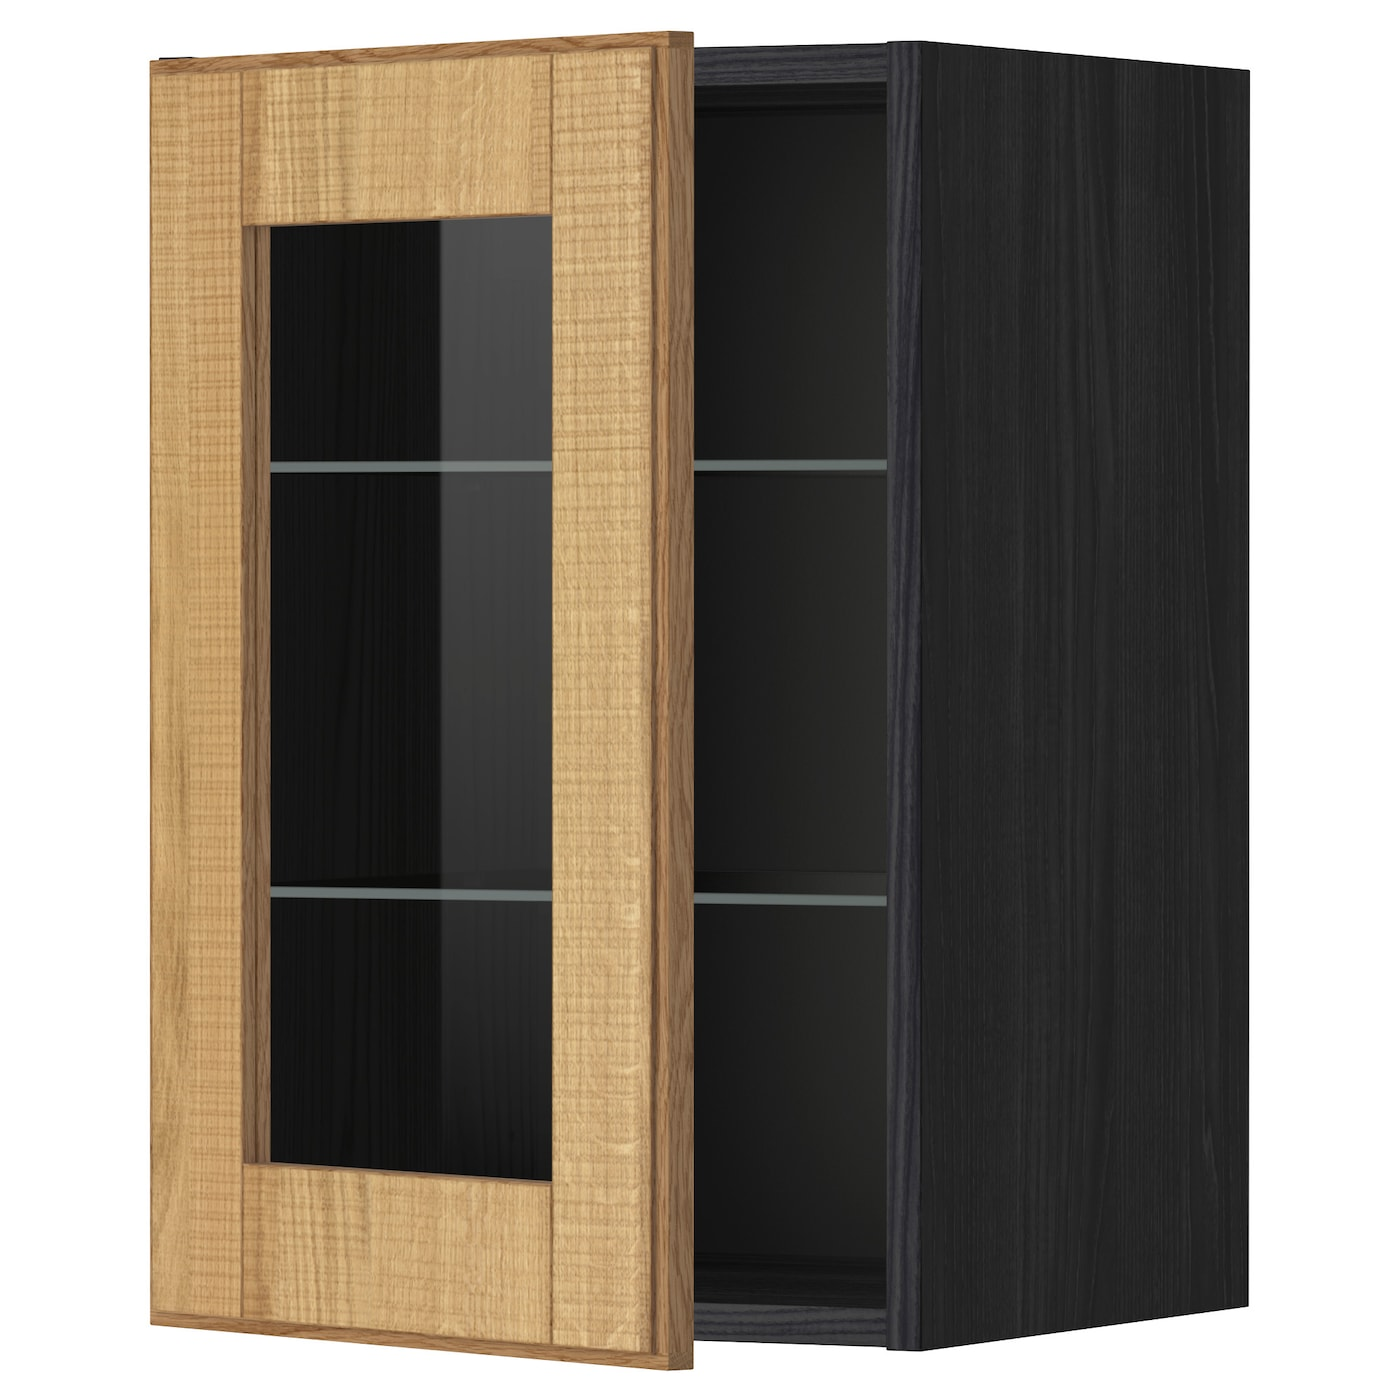 Metod wall cabinet w shelves glass door black hyttan oak for Glass kitchen wall units